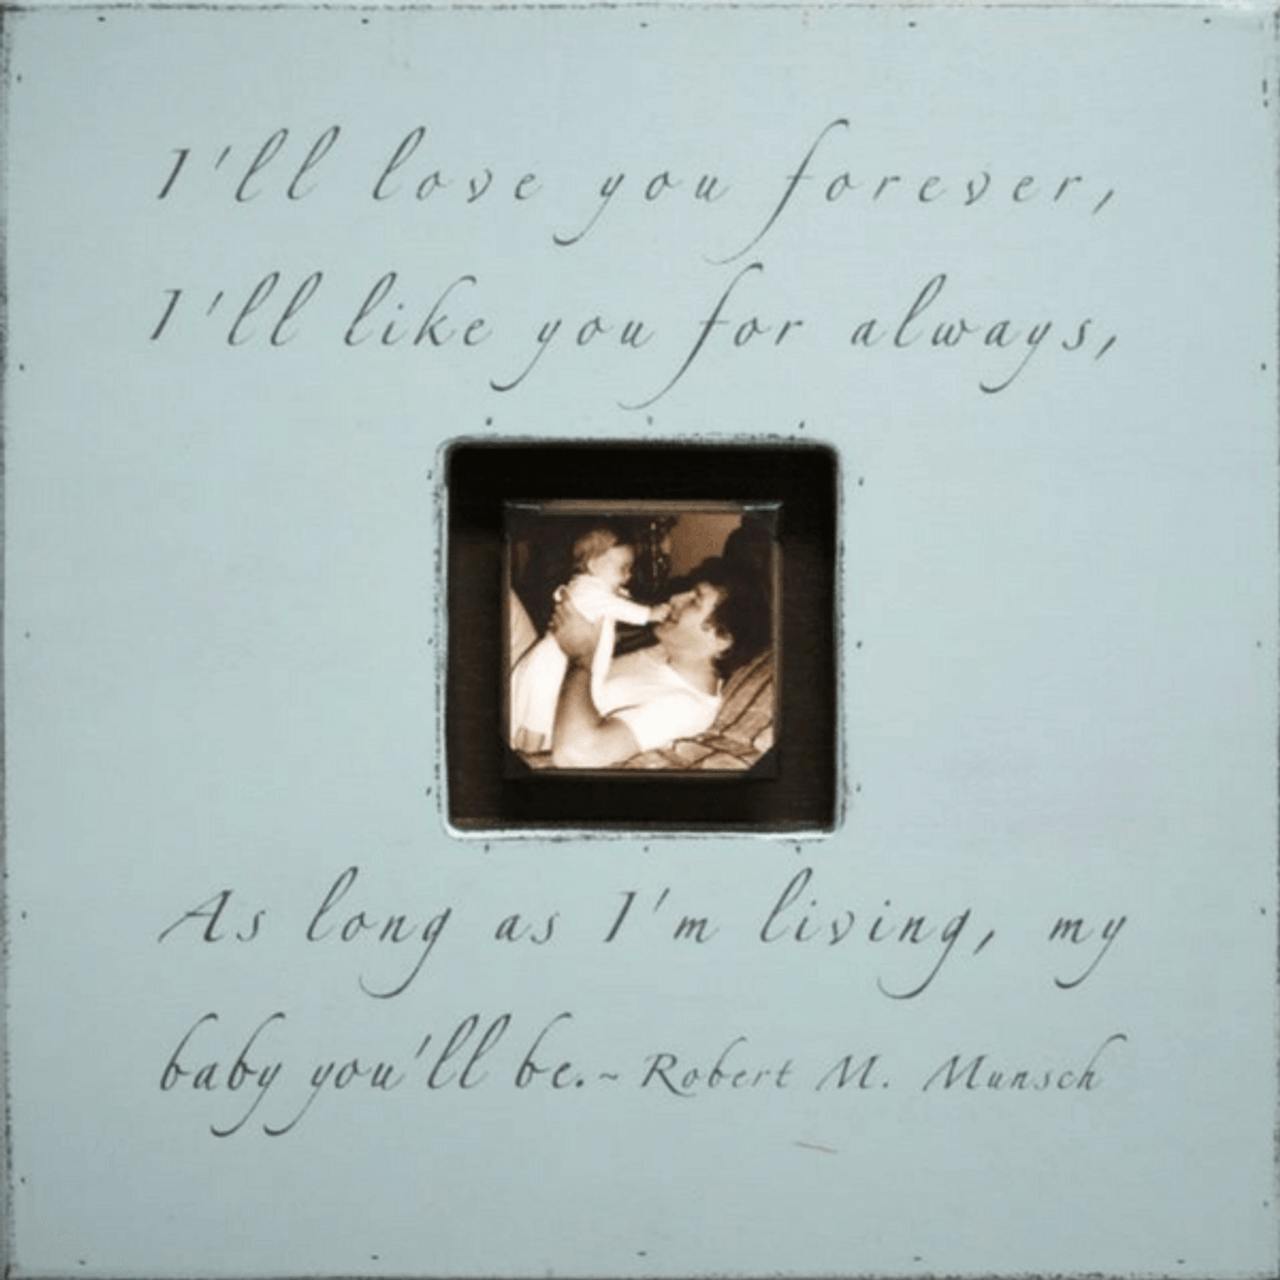 i'll love you forever - photo box